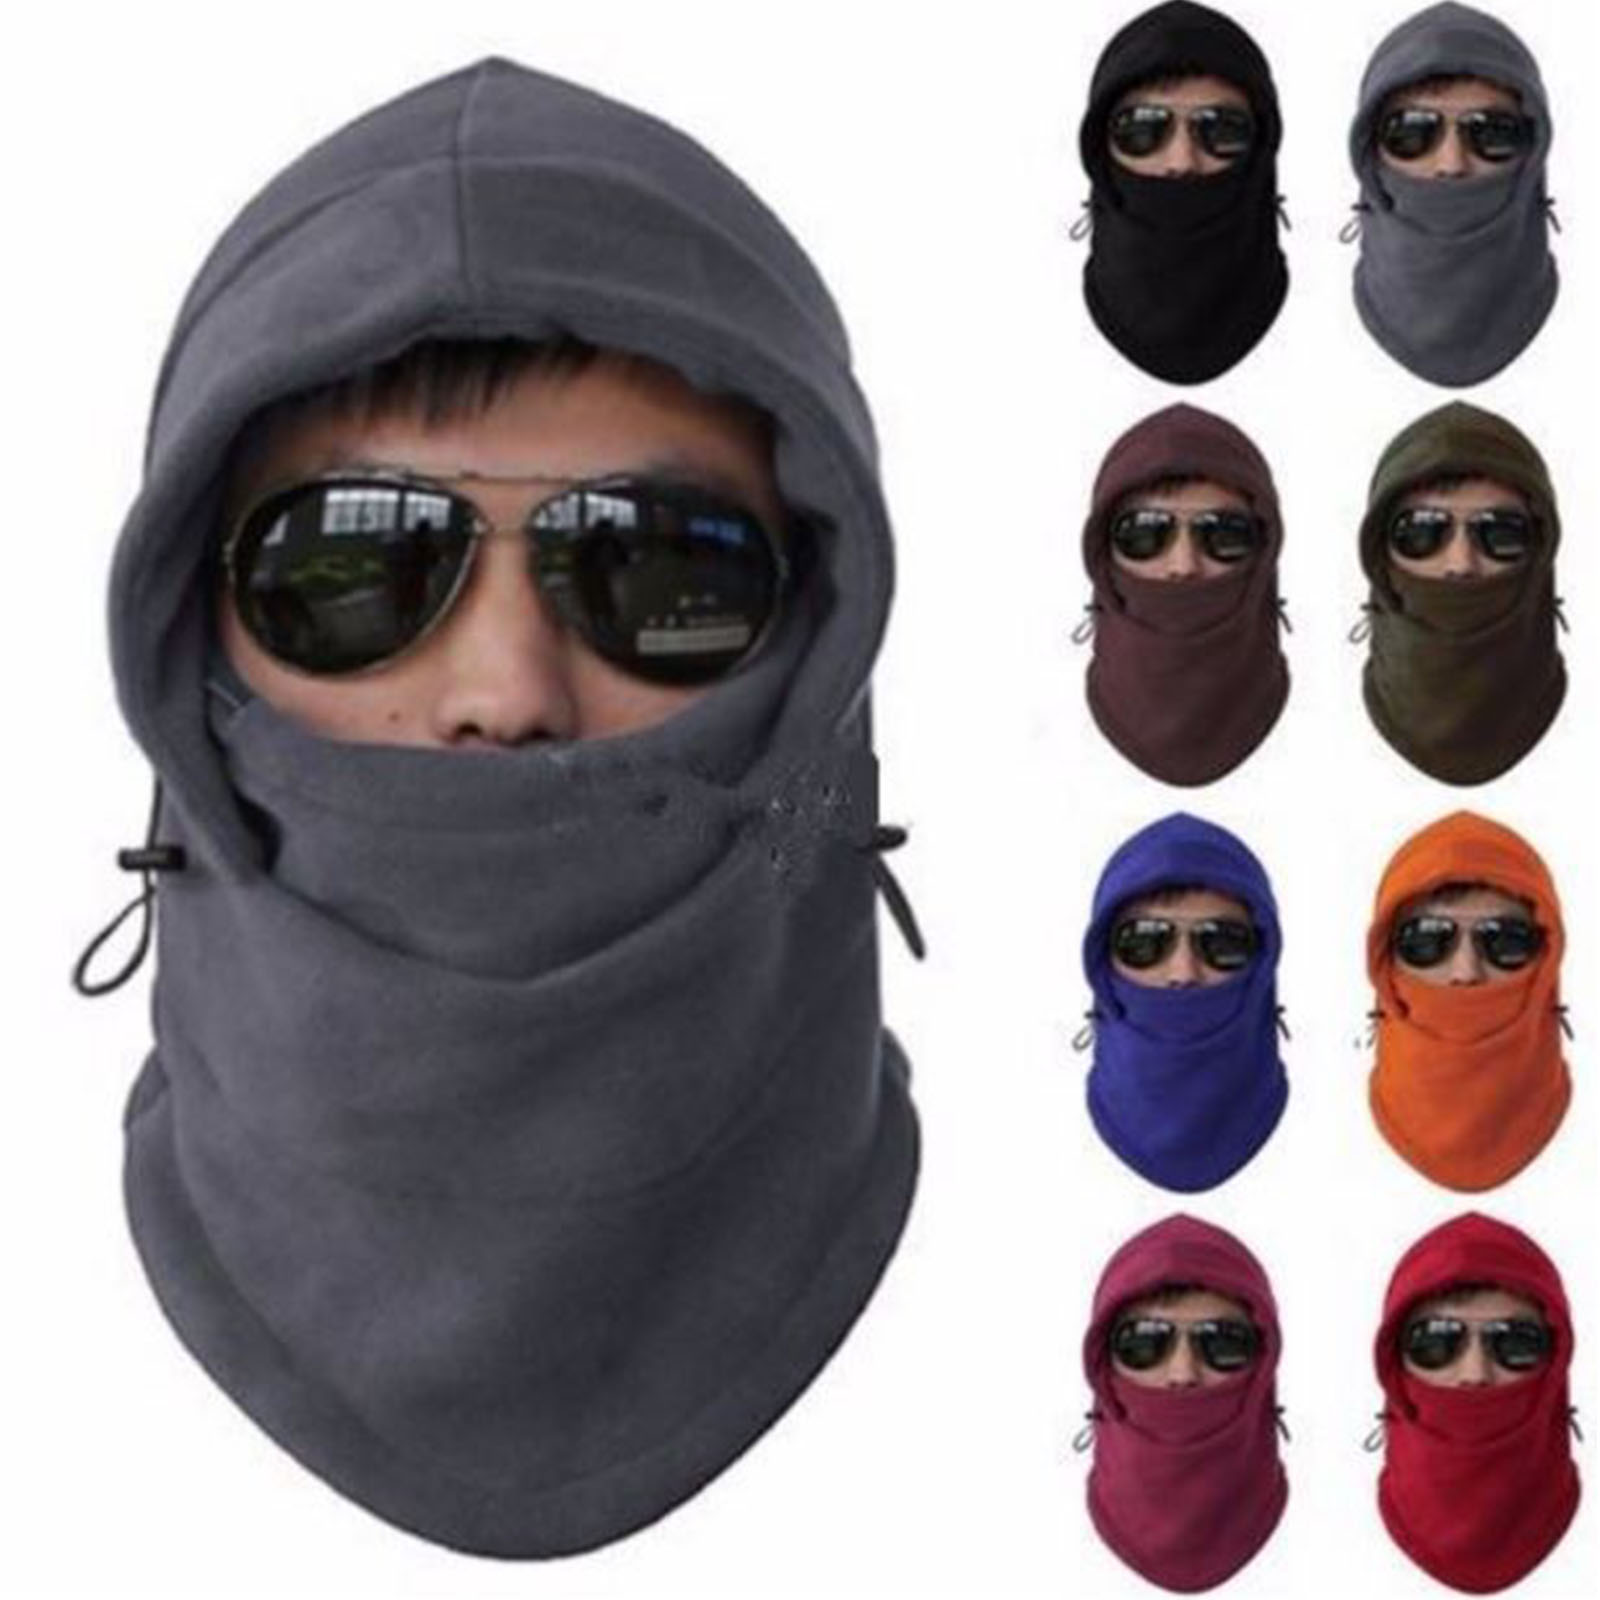 New Full Cover Face Mask Headwear Balaclava Bike Caps Moderate Cost Girl's Hats